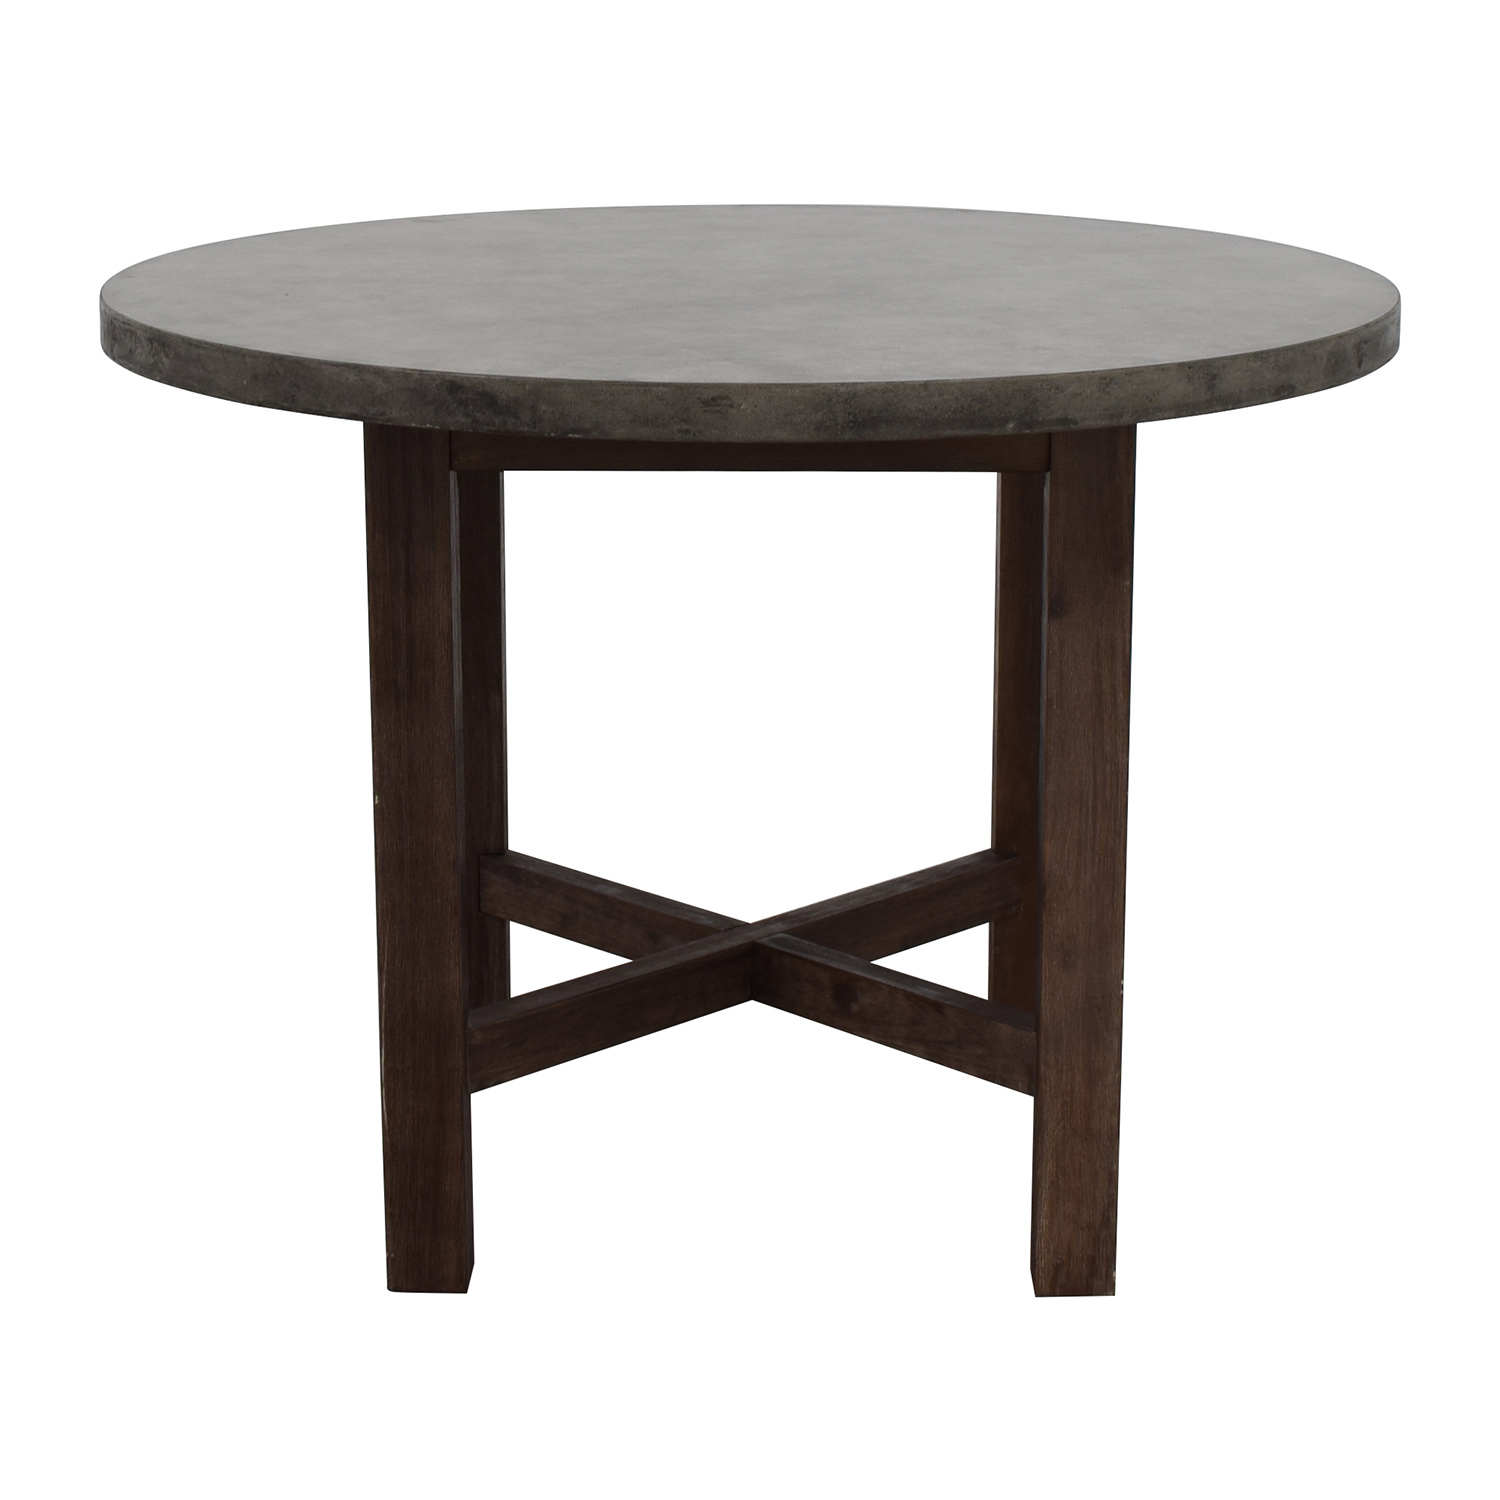 Dining Table Online Image collections Dining Table Ideas : round grey stone dining table from sorahana.info size 1500 x 1500 jpeg 219kB